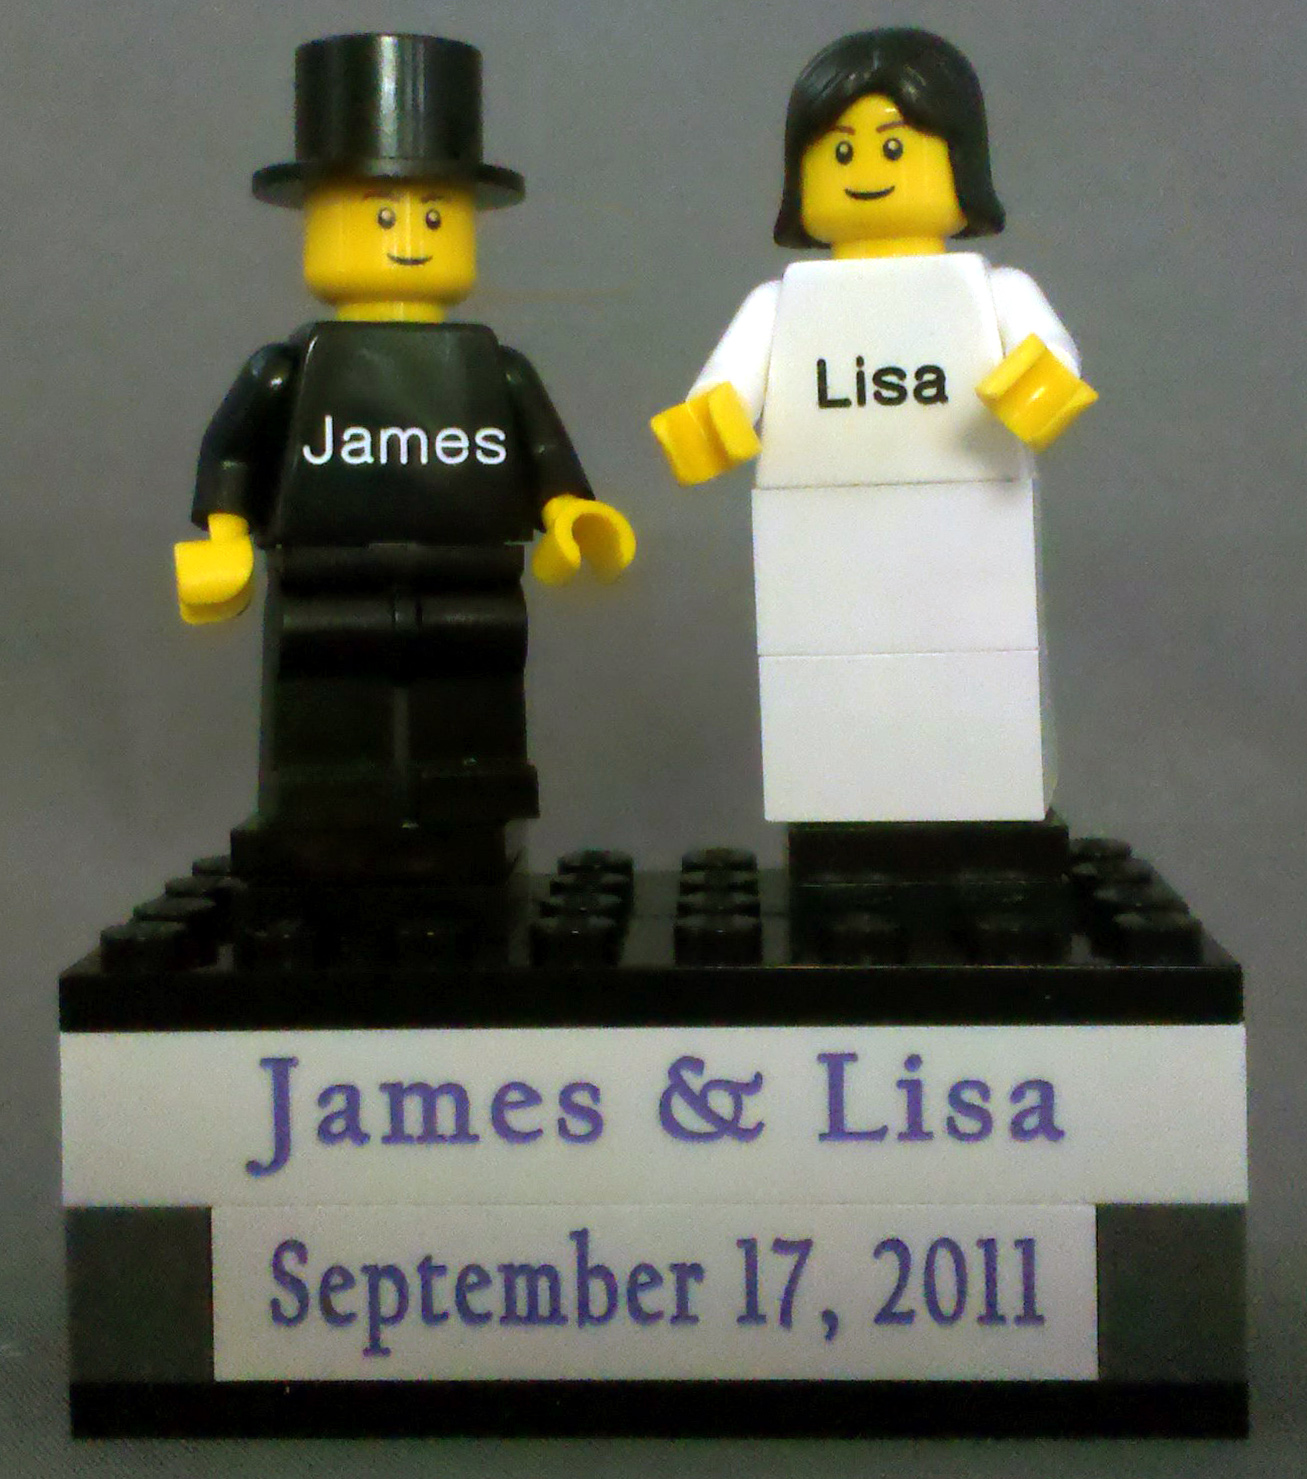 Lego Wedding Cake Topper The Original Brickengraverbrickprinter